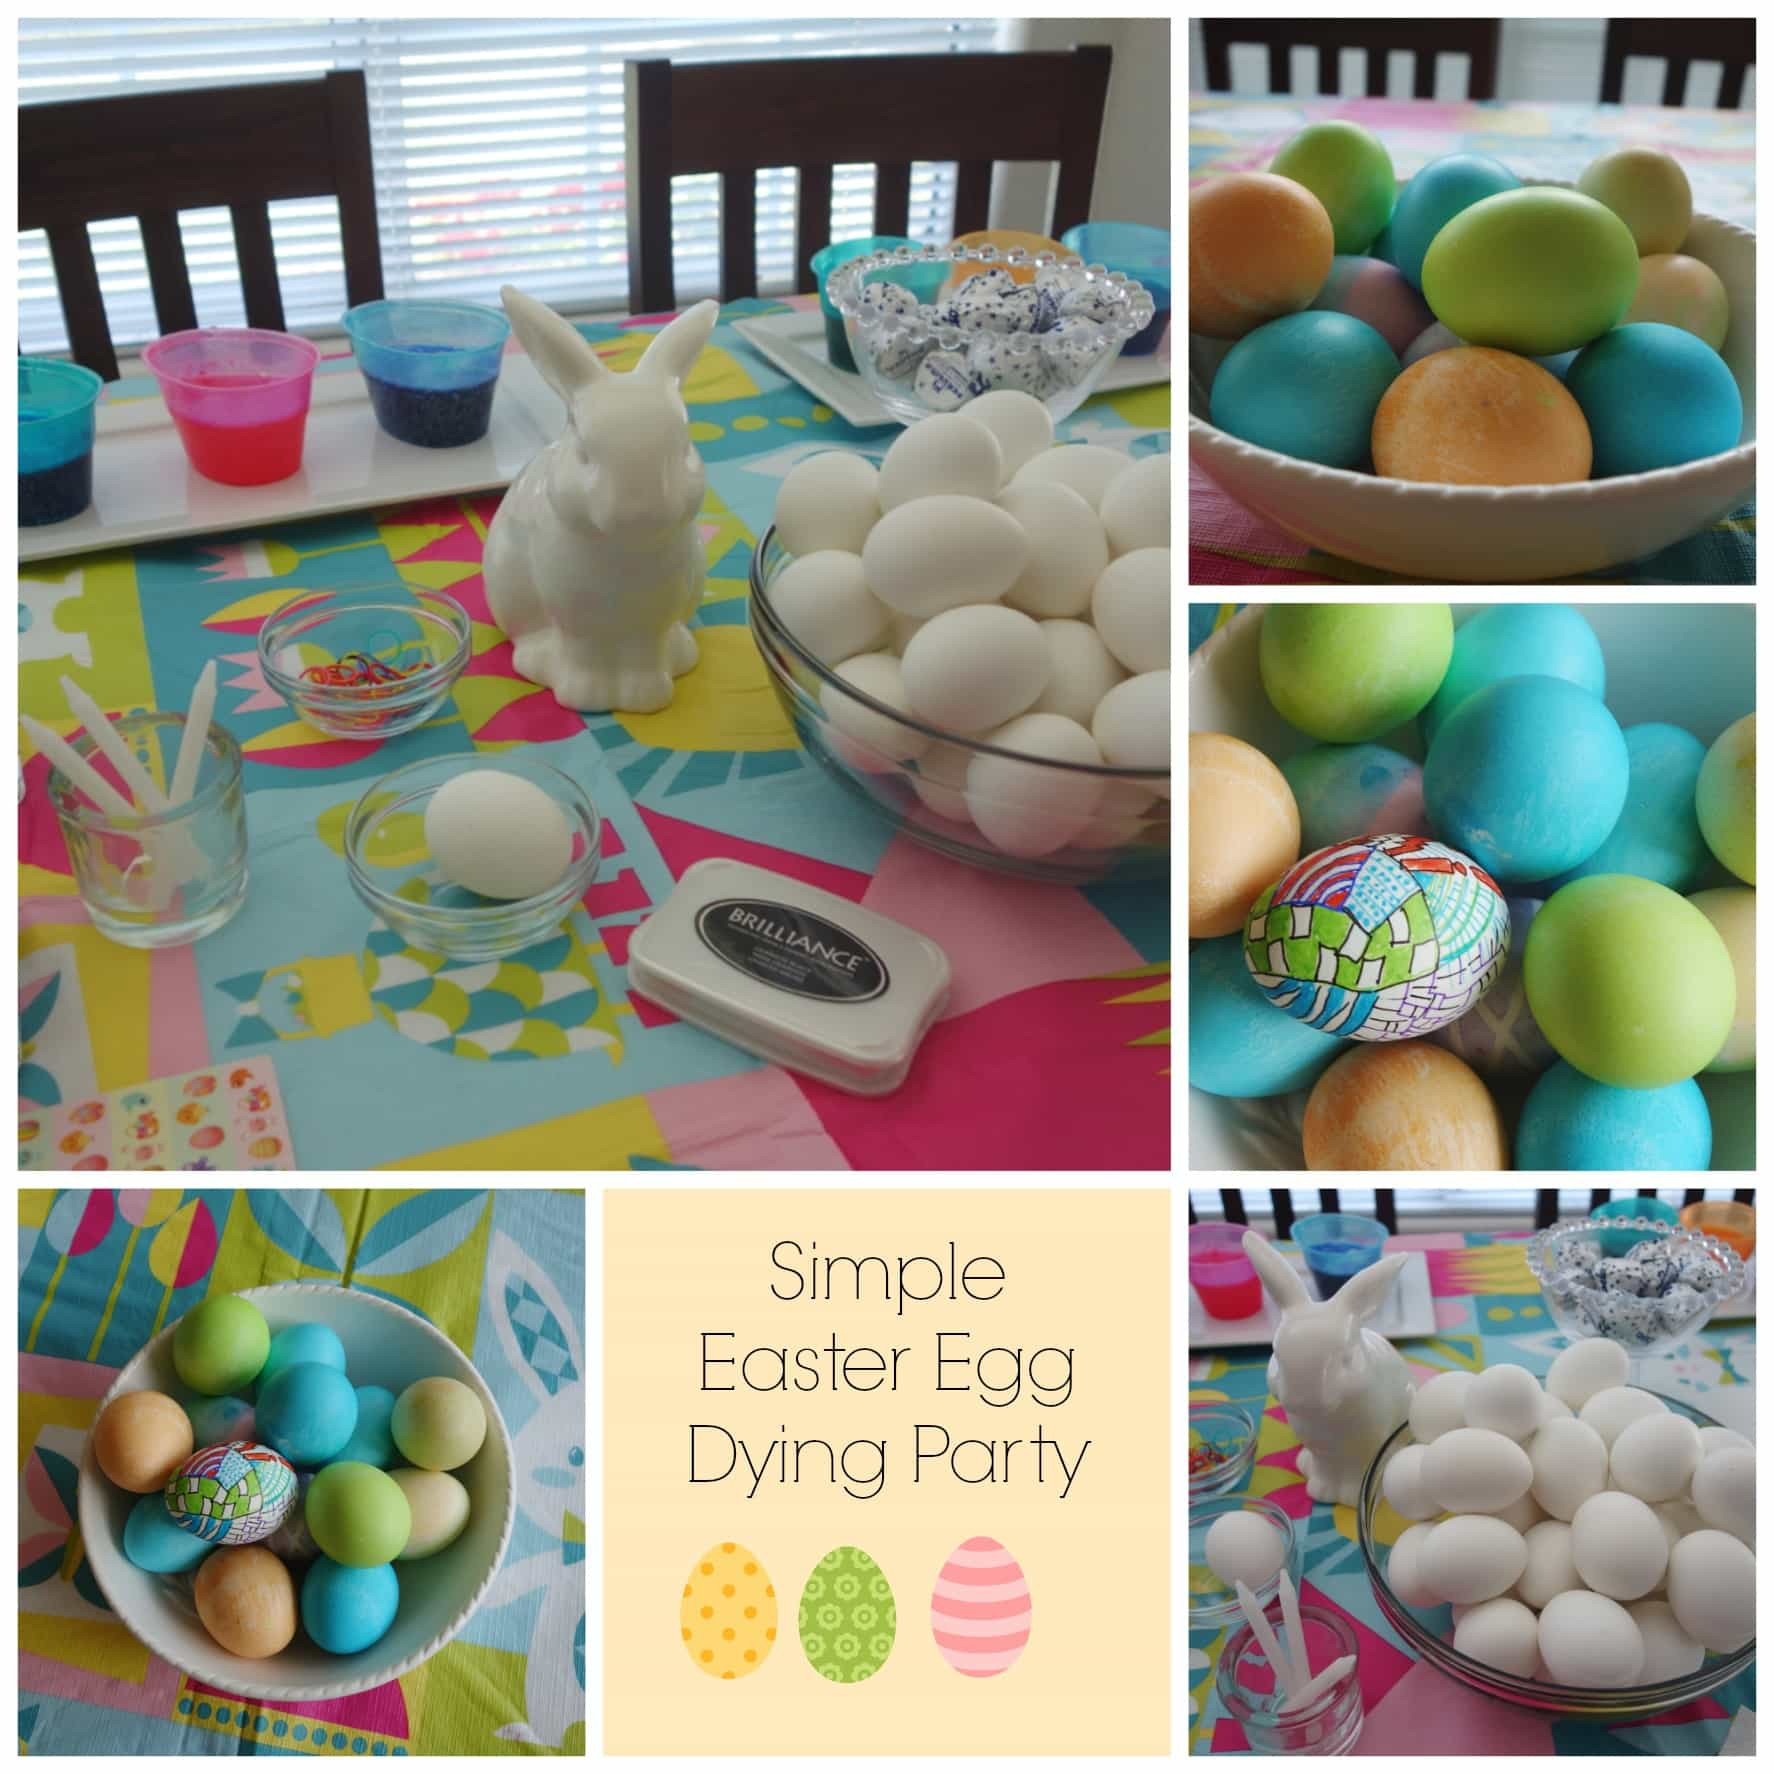 Easter Egg Dying Party Ideas  Simple Easter Egg Dying Party Momma Can